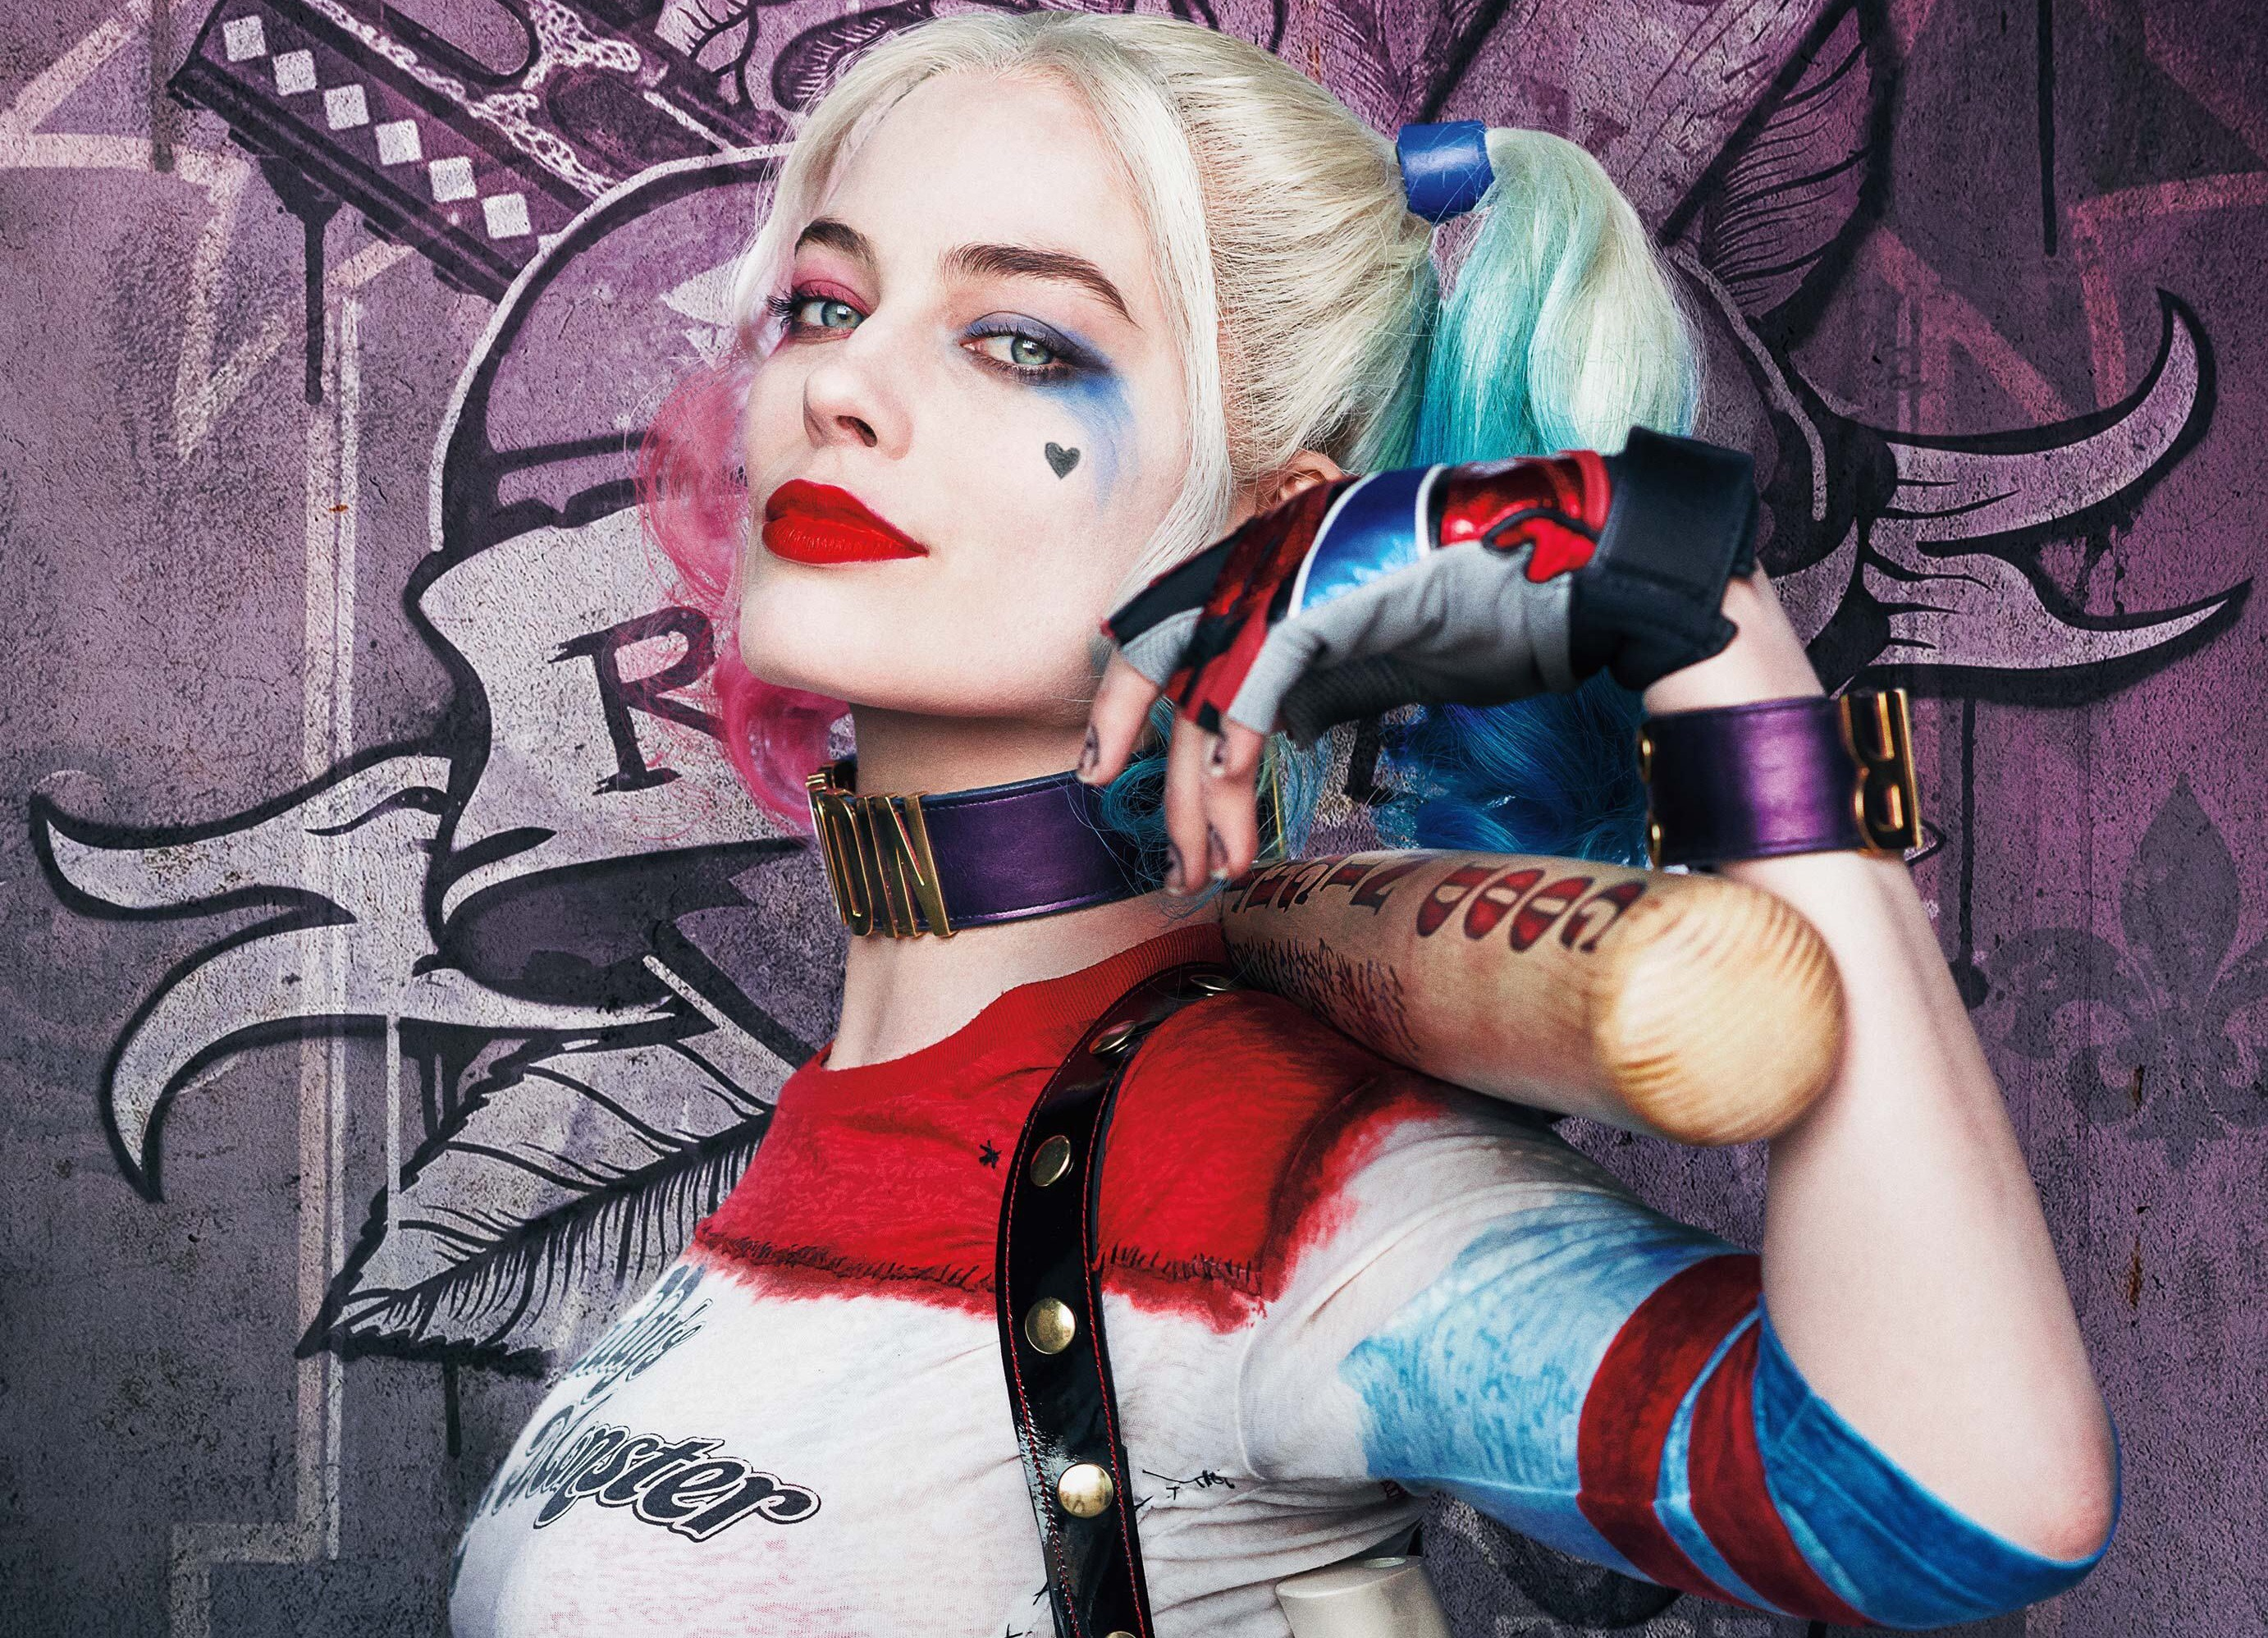 Margot Robbie portrayed Harleen Quinzel / Harley Quinn in the Suicide Squad film